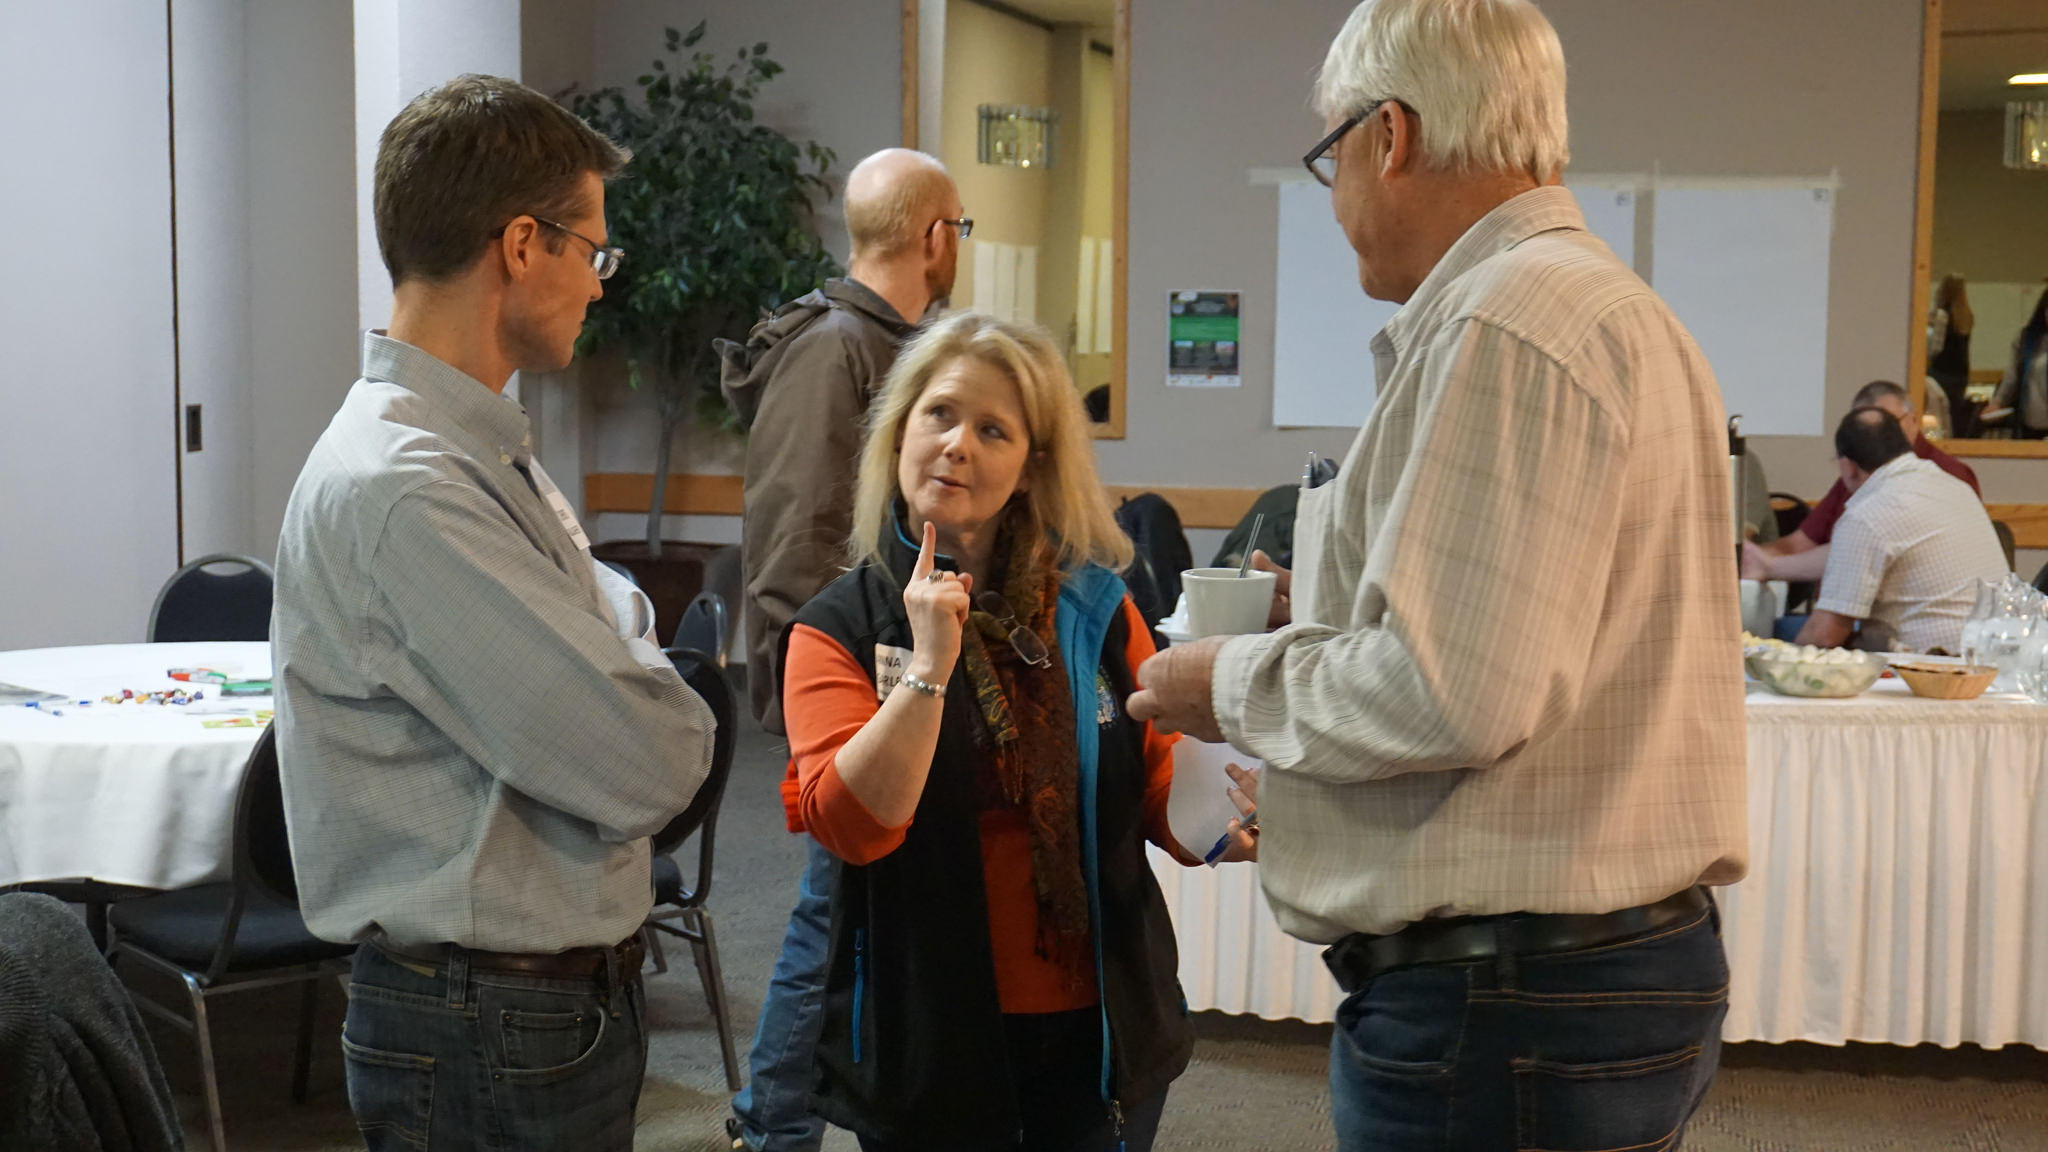 Anna Garleff appears to be getting a little sassy with Chris Gallagher and Mike Wind